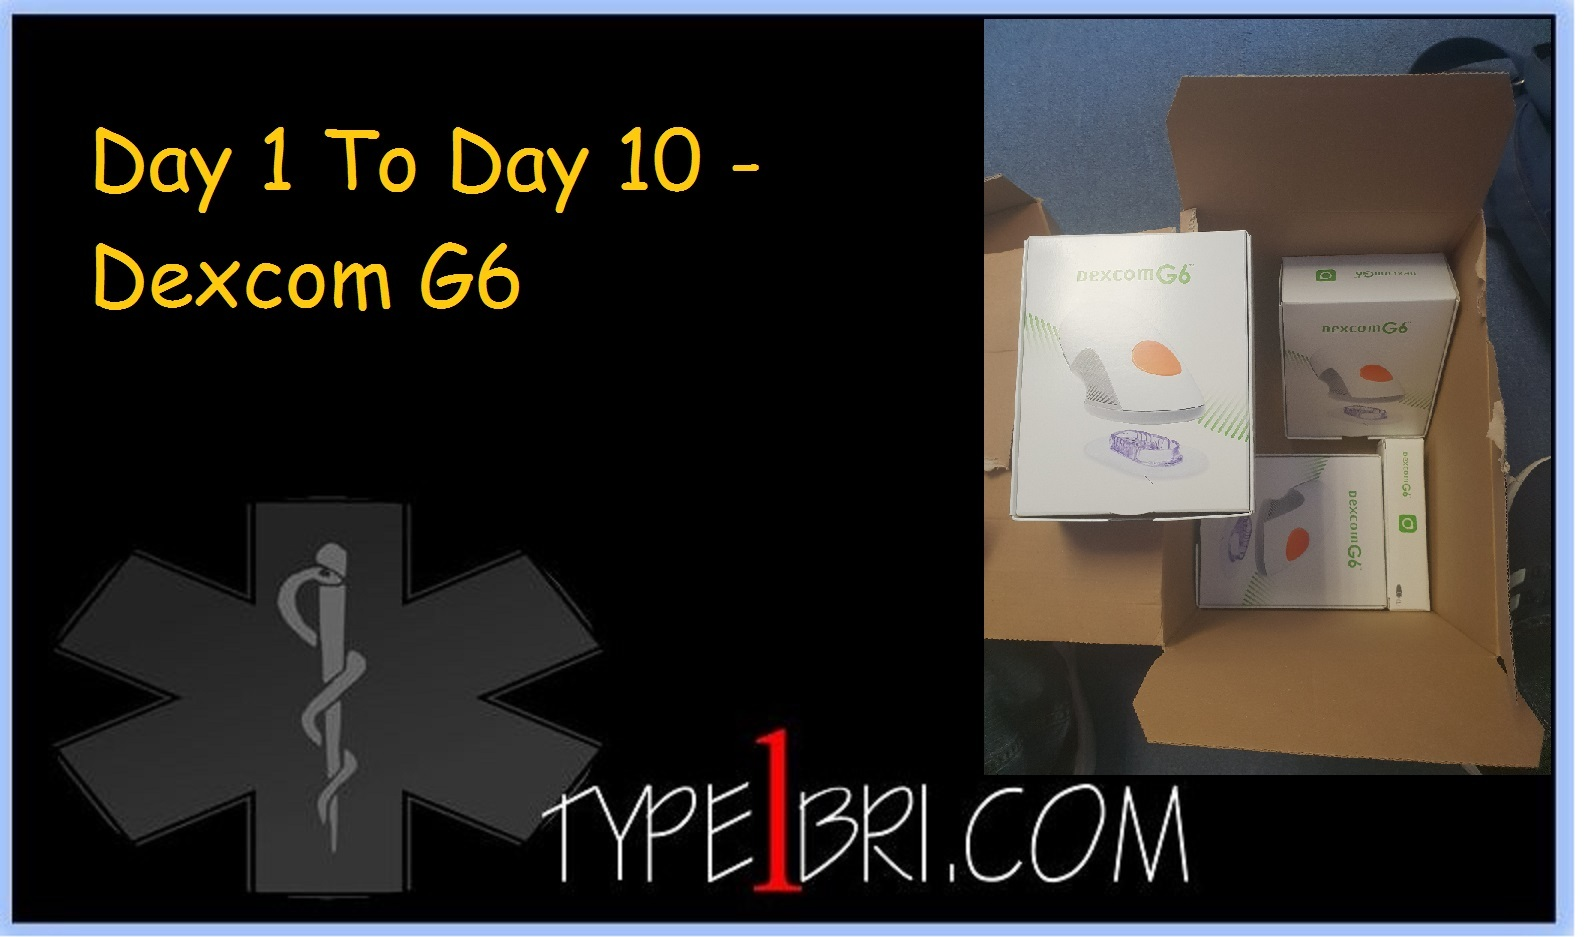 Day 1 To Day 10 On The Dexcom G6 - Type1Bri com - A Diabetic